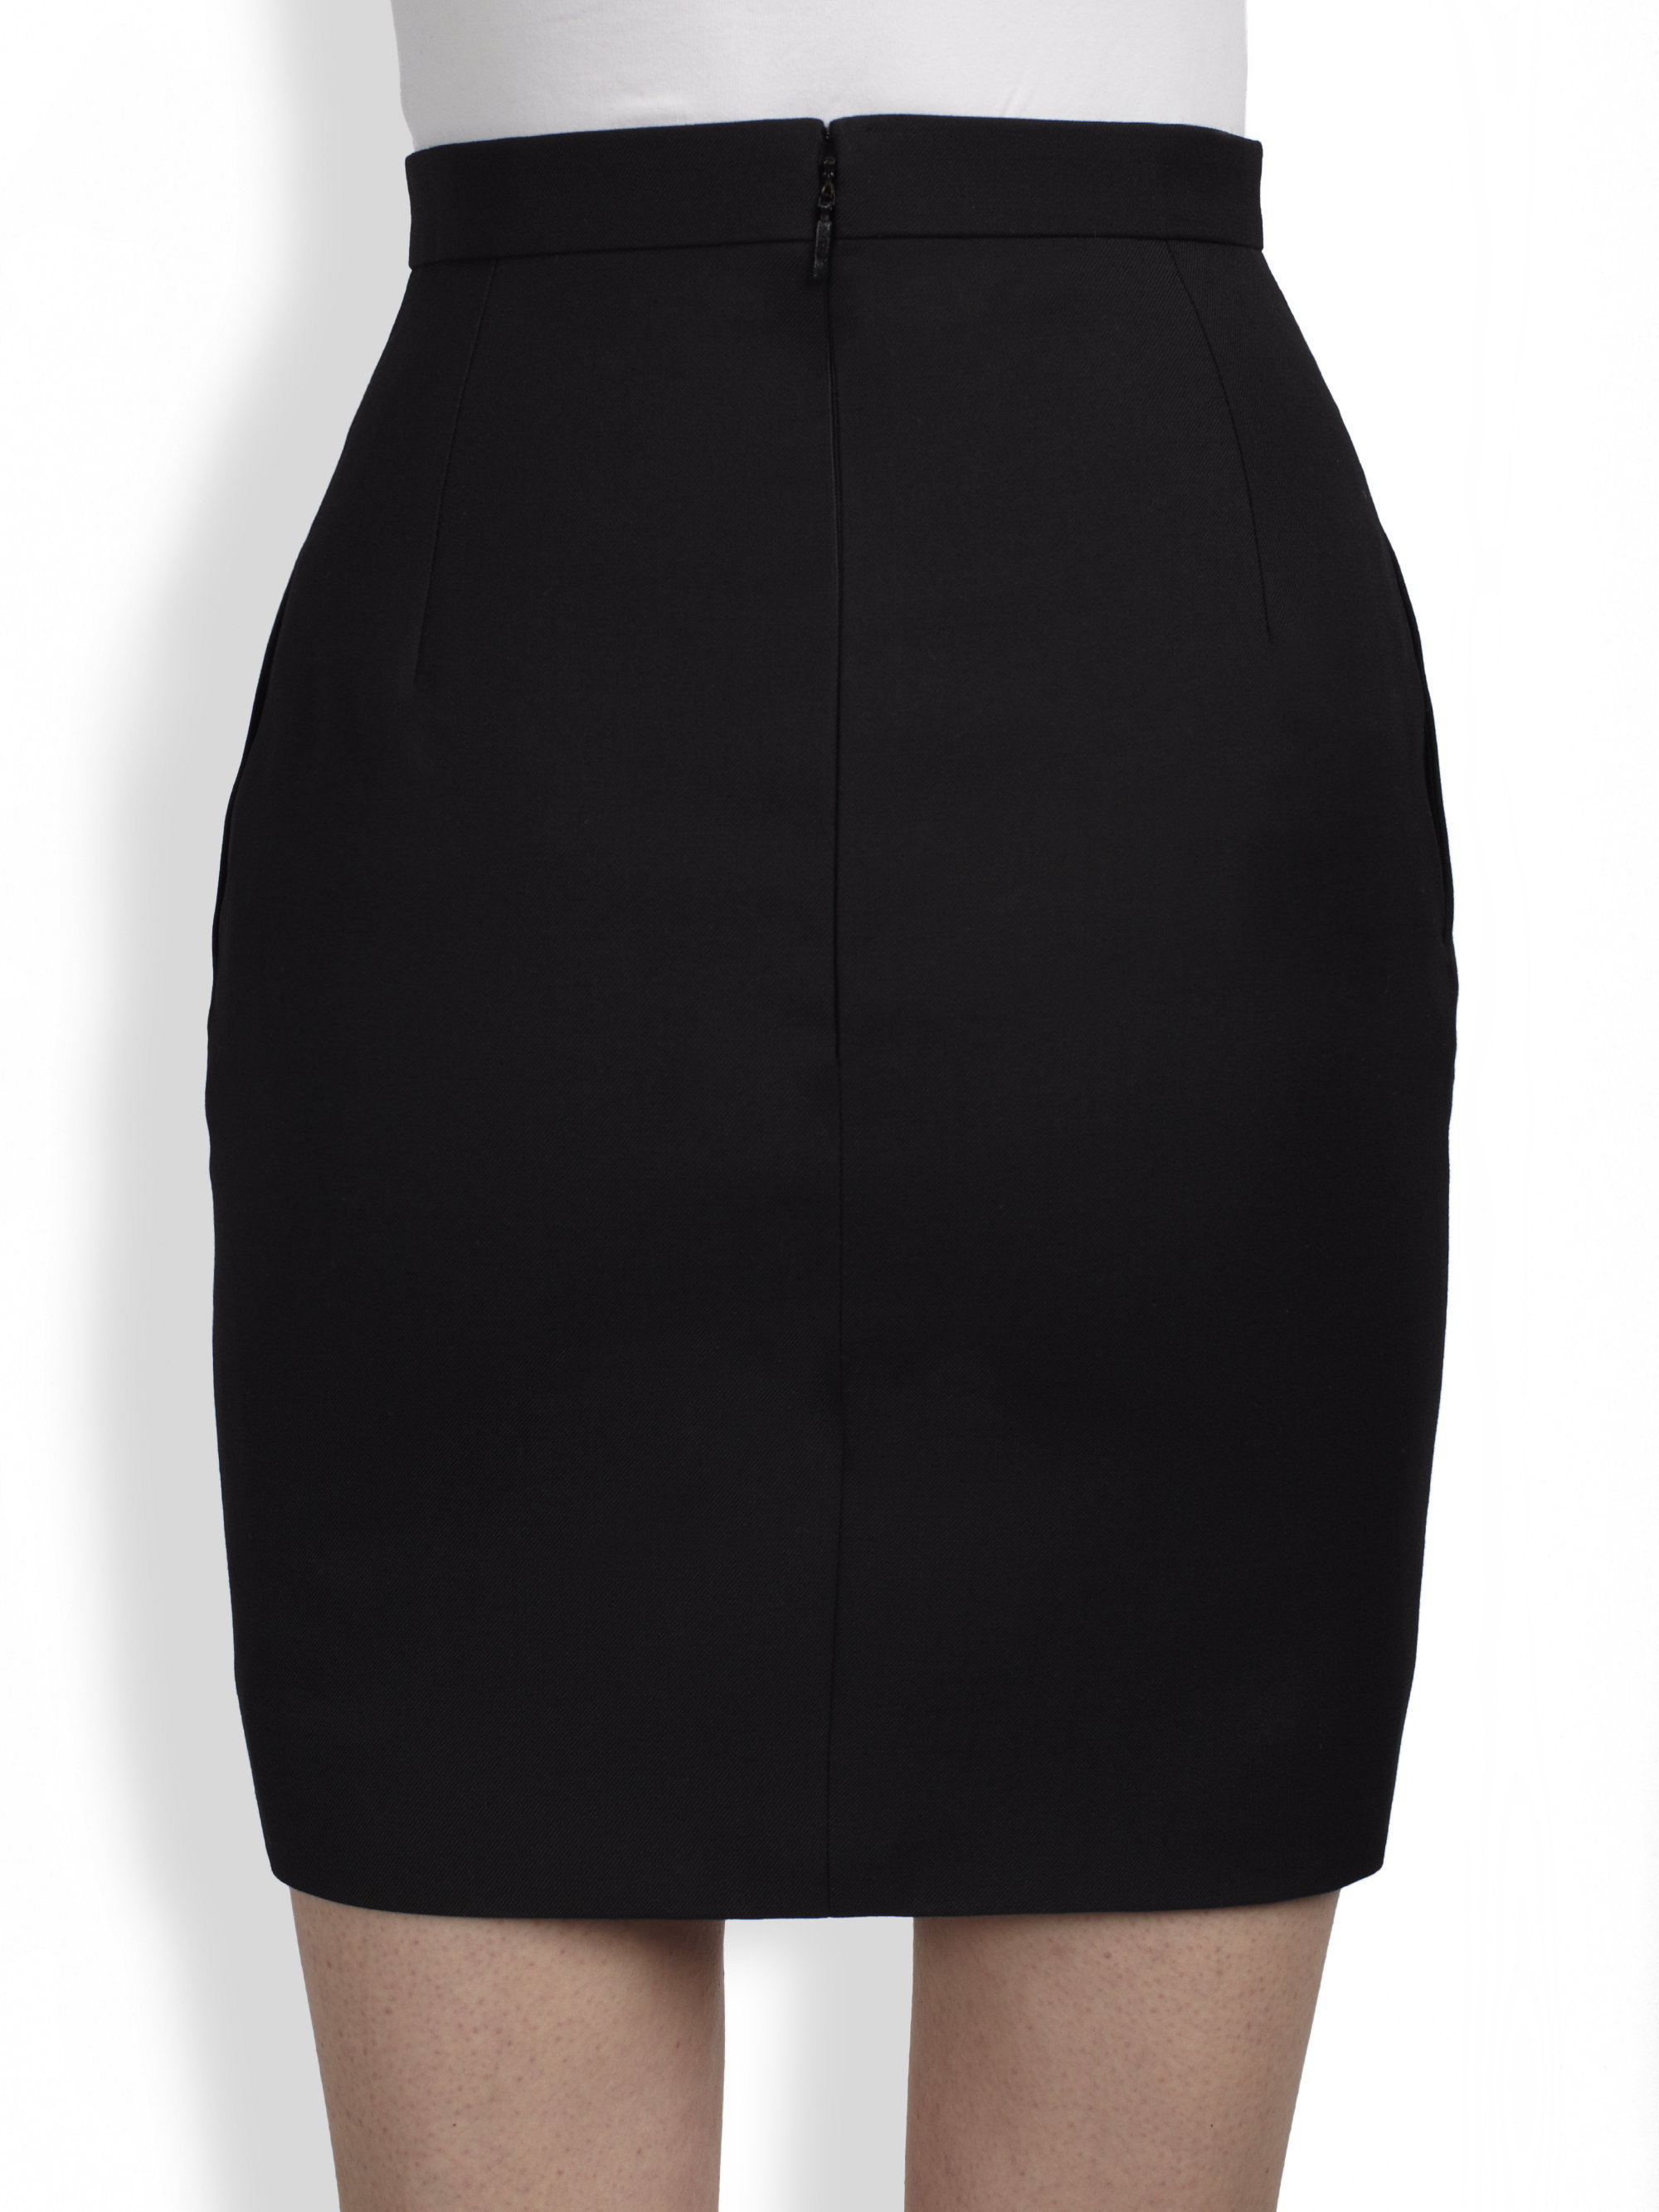 Saint laurent Mini Pencil Skirt in Black | Lyst